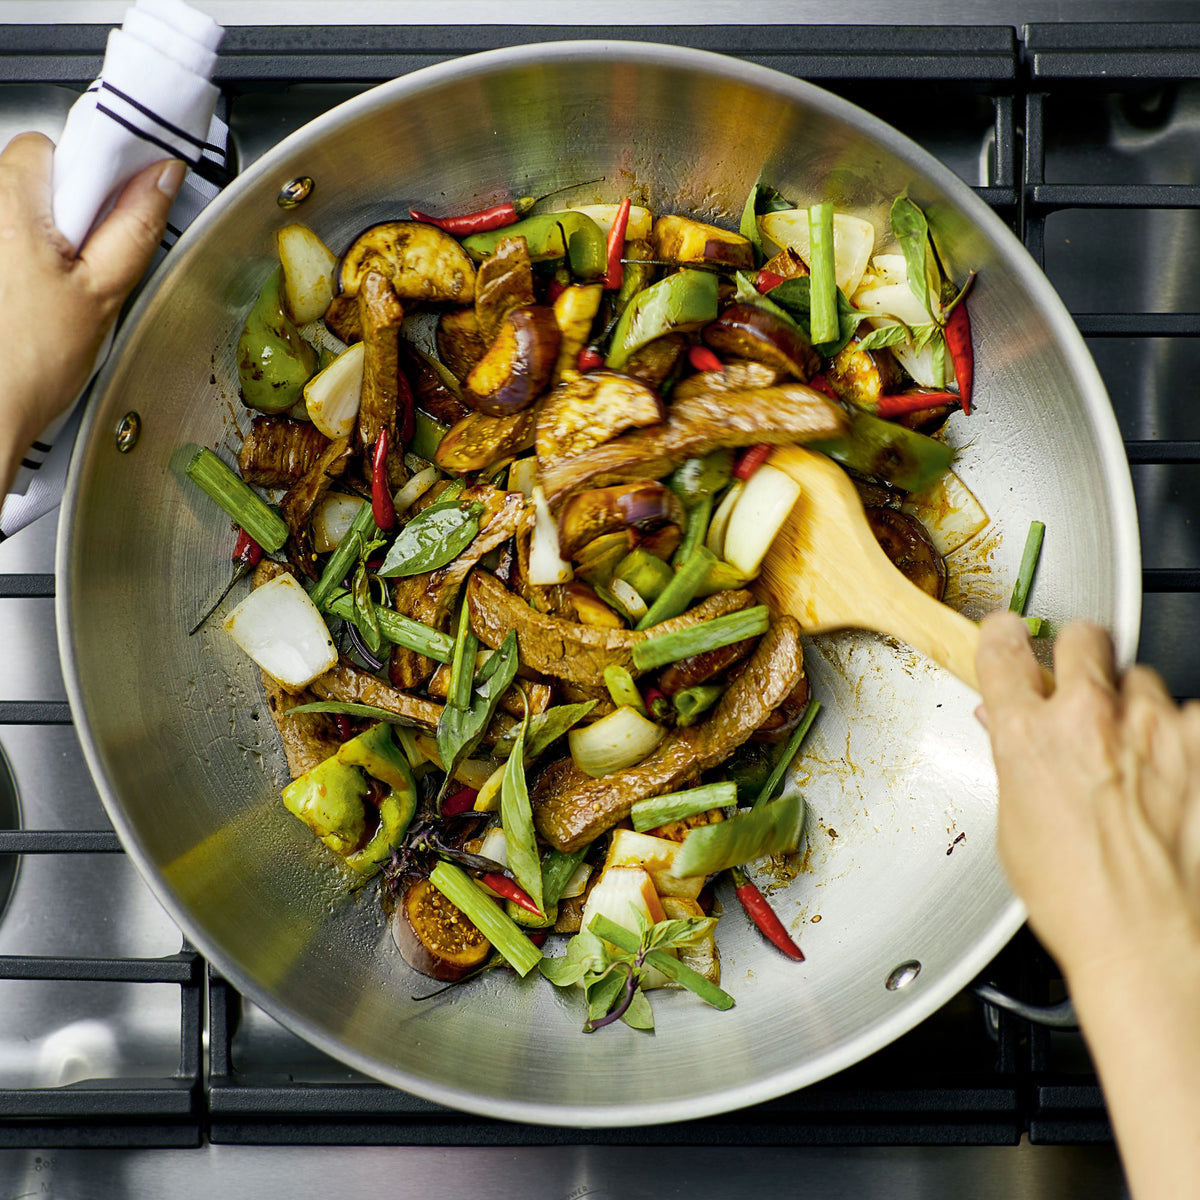 5-Ply Clad Stainless Steel 15-Inch Wok